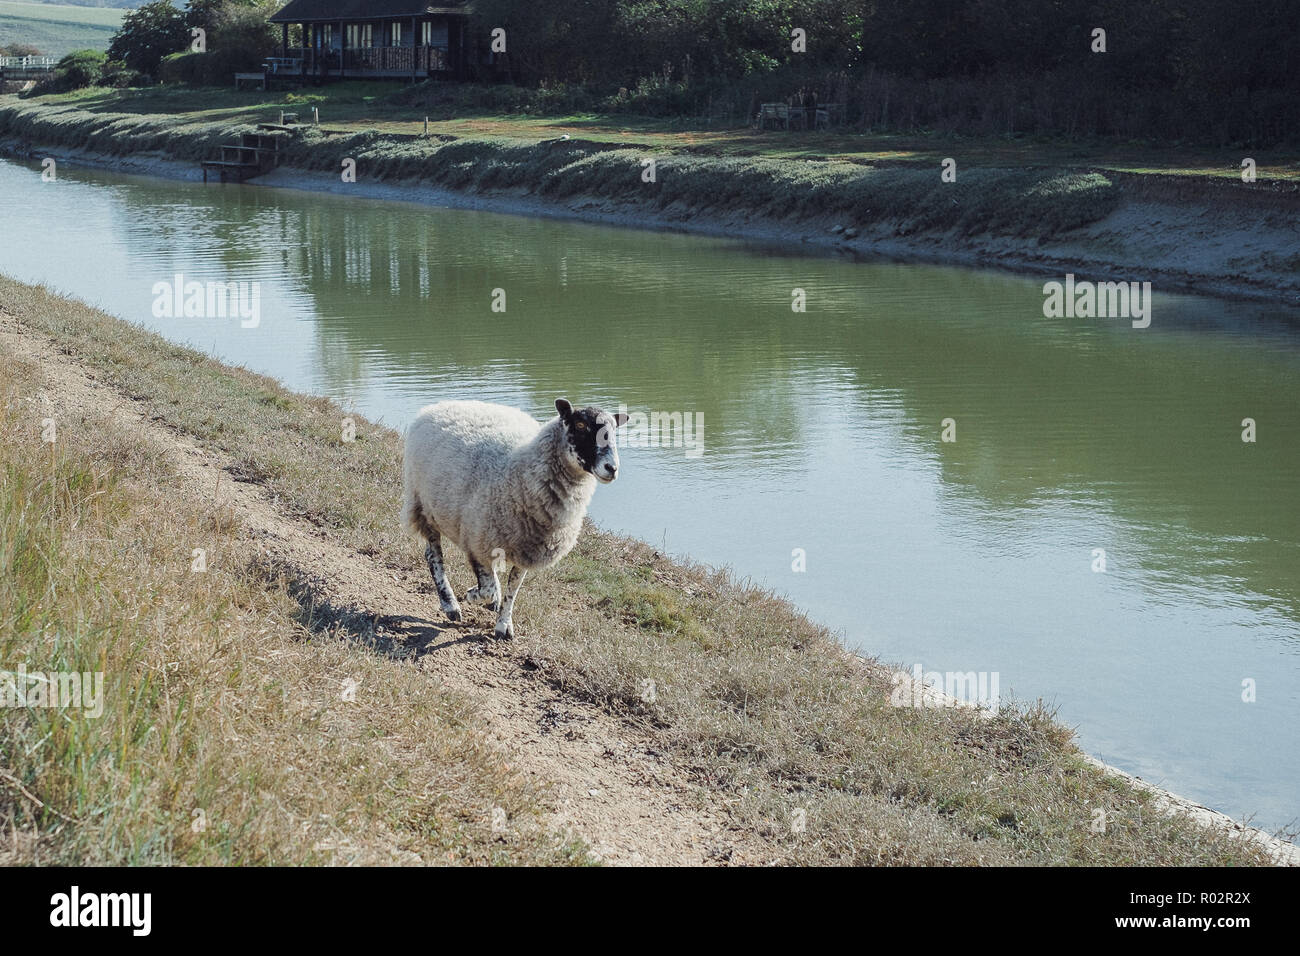 Sheep running along the bank of the River Cuckmere, near Alfriston, Wealden, East Sussex, England, UK - Stock Image